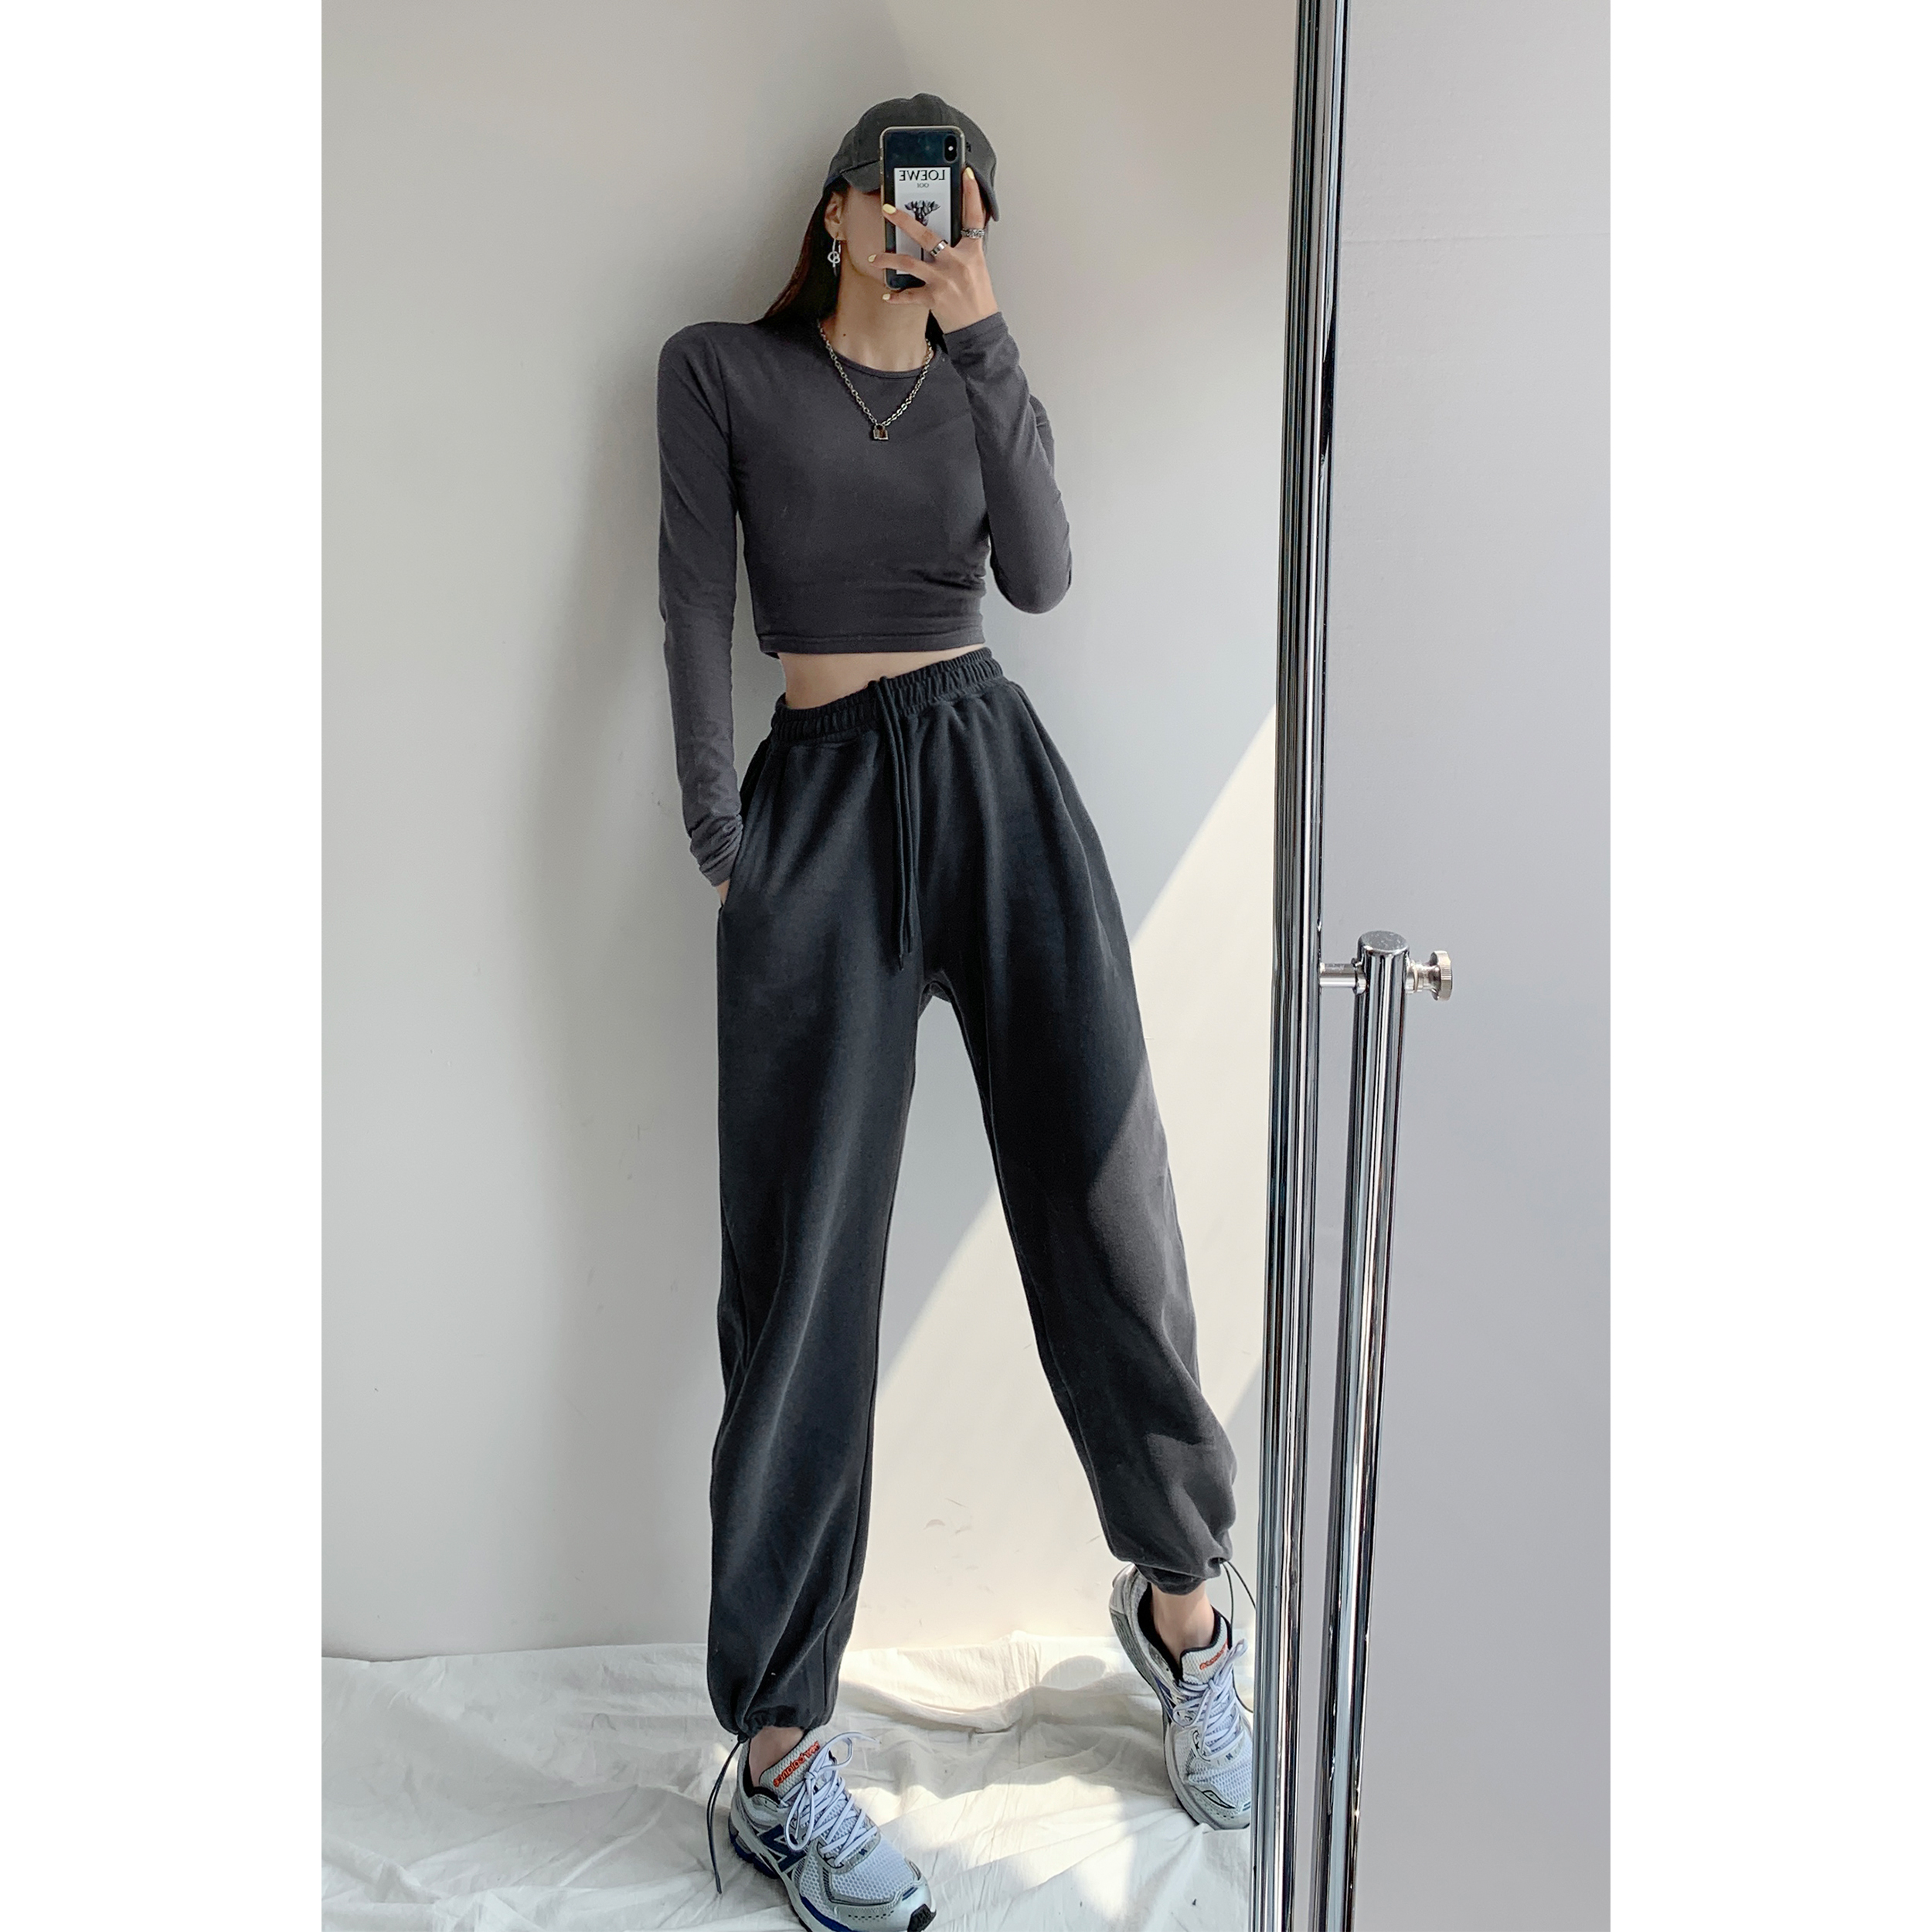 Fried Street American loose sweatpants women casual leggings spring and autumn gray high-waisted thin straight straight pants in the tide